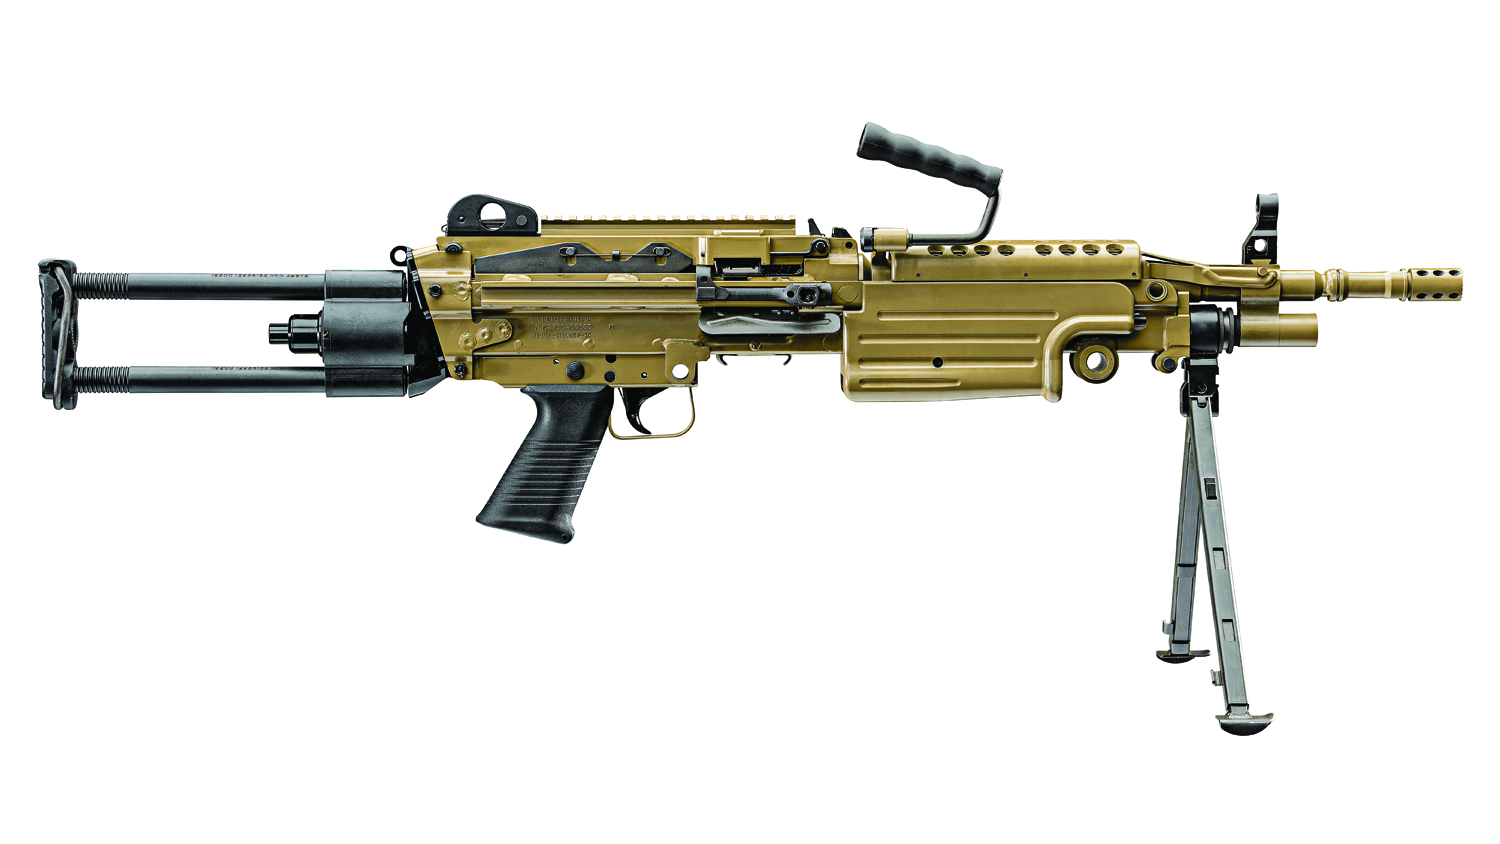 FN M249S weapon system